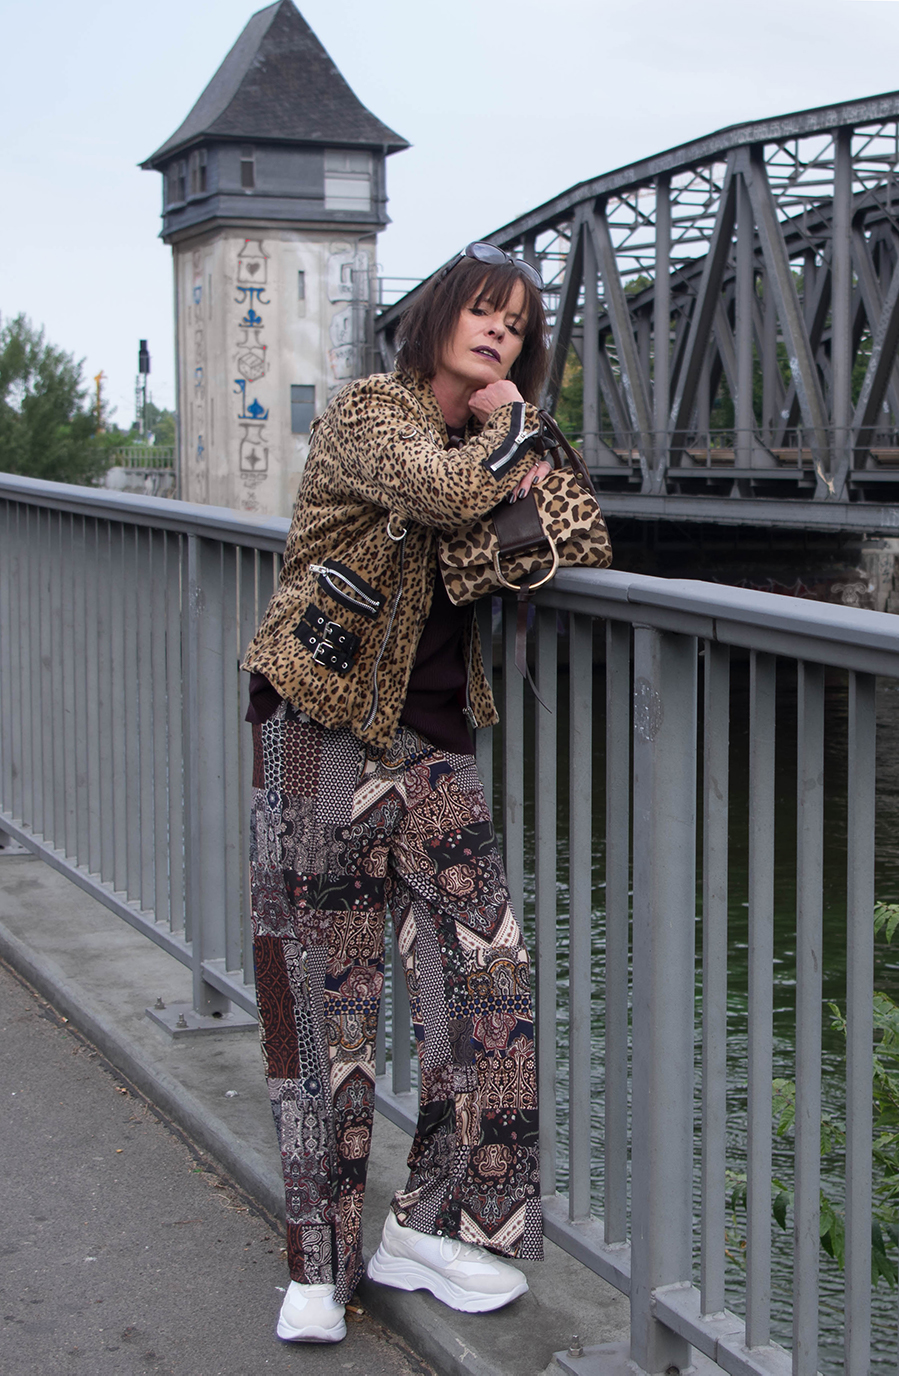 Just-take-a-look Berlin - Herbst Trend Outfit Treptow-6.1